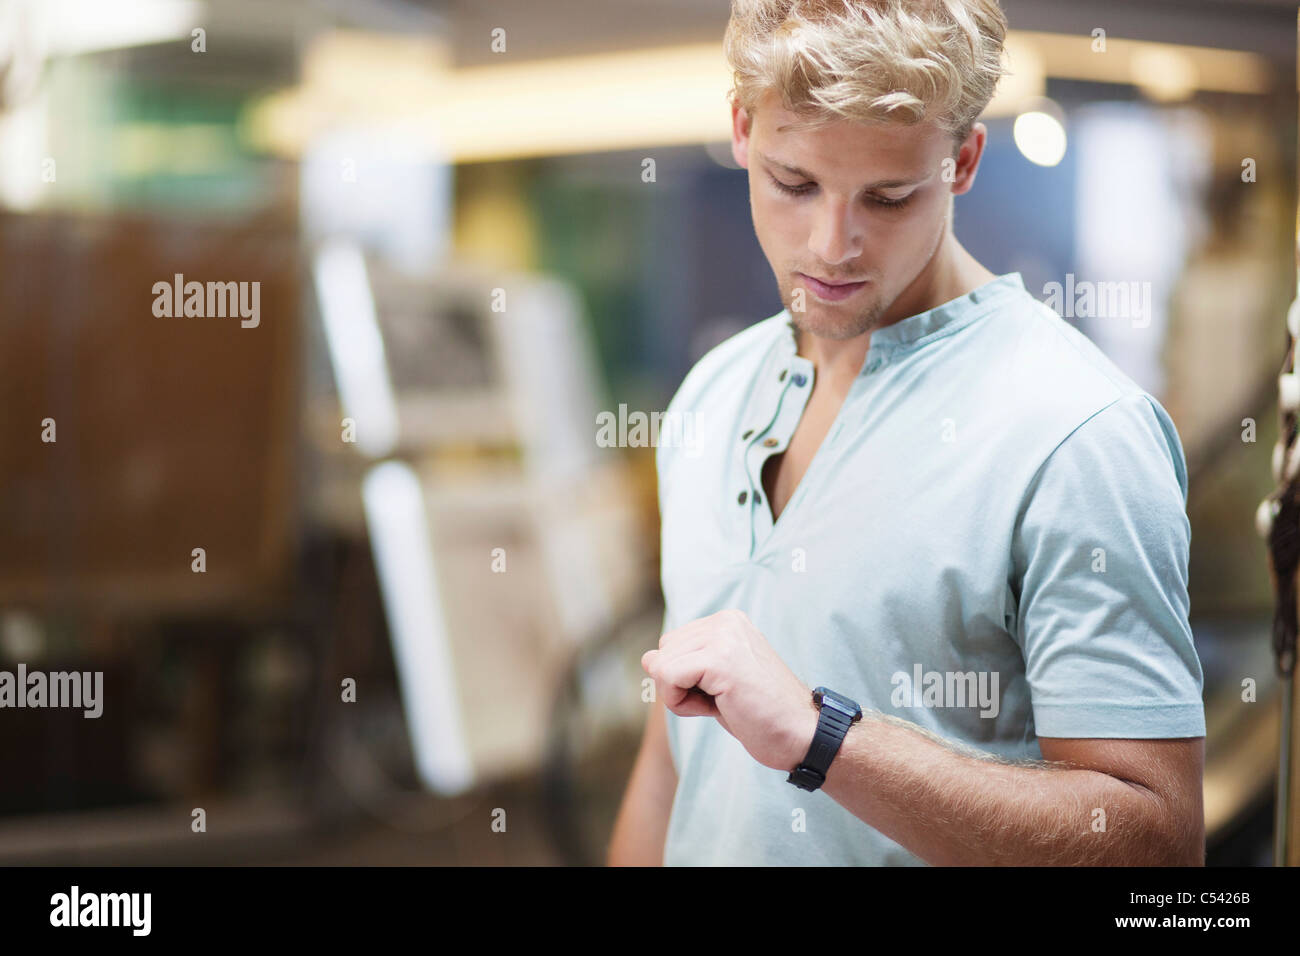 Young man checking the time in a clothing store - Stock Image